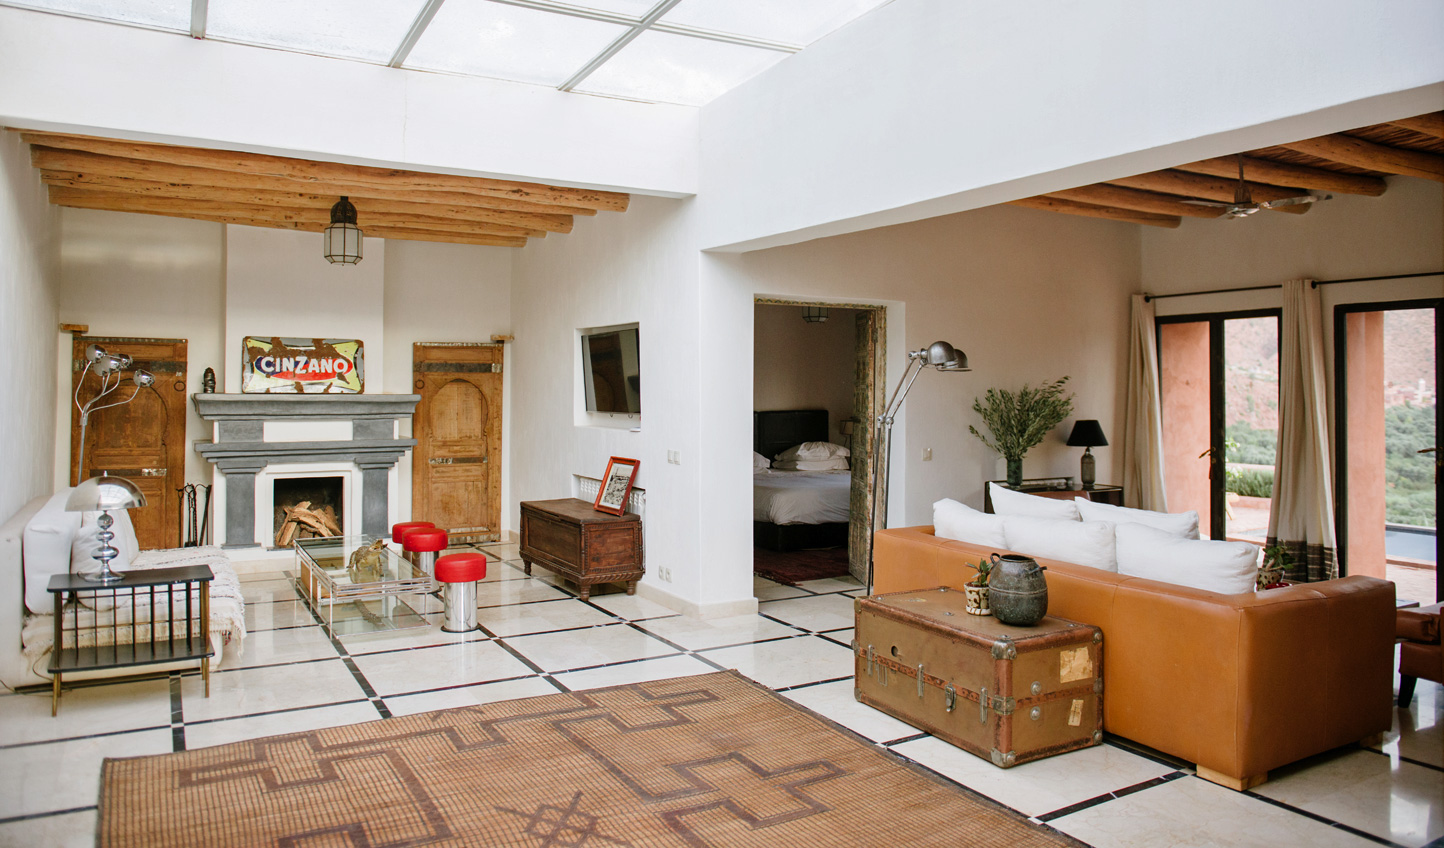 The spacious villas blend traditional Berber design with contemporary accents